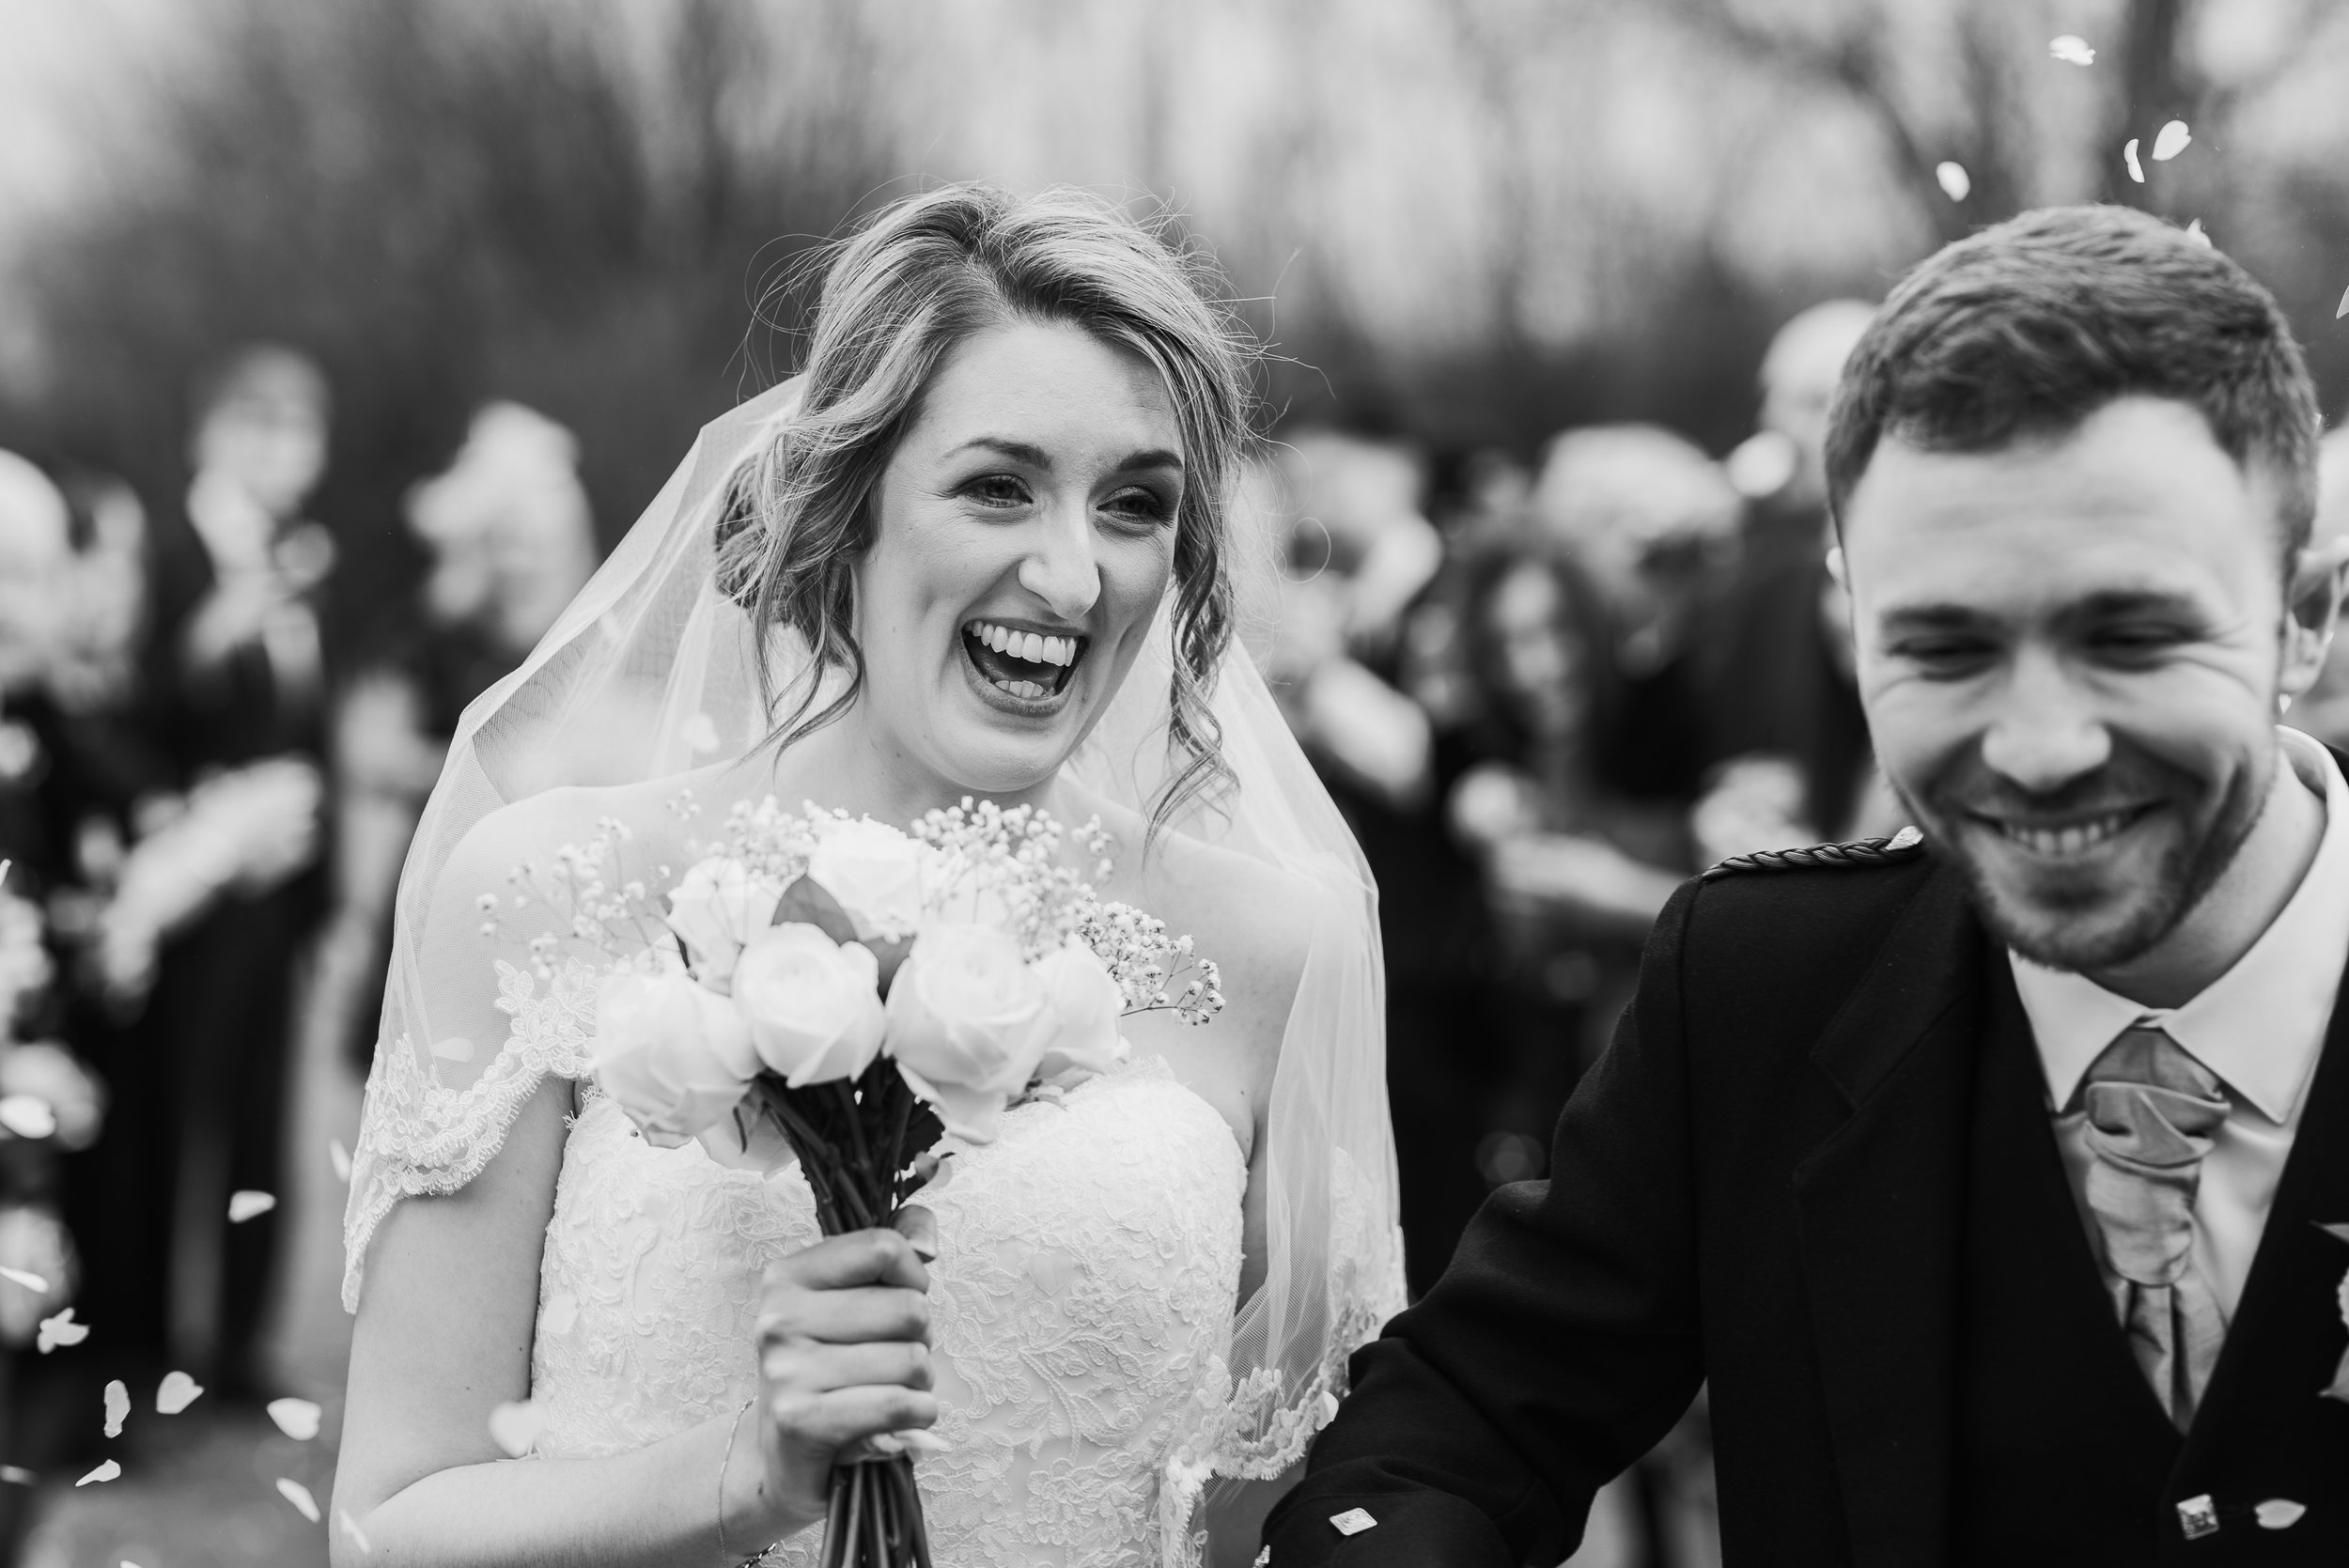 Recommended wedding photographer Wokingham